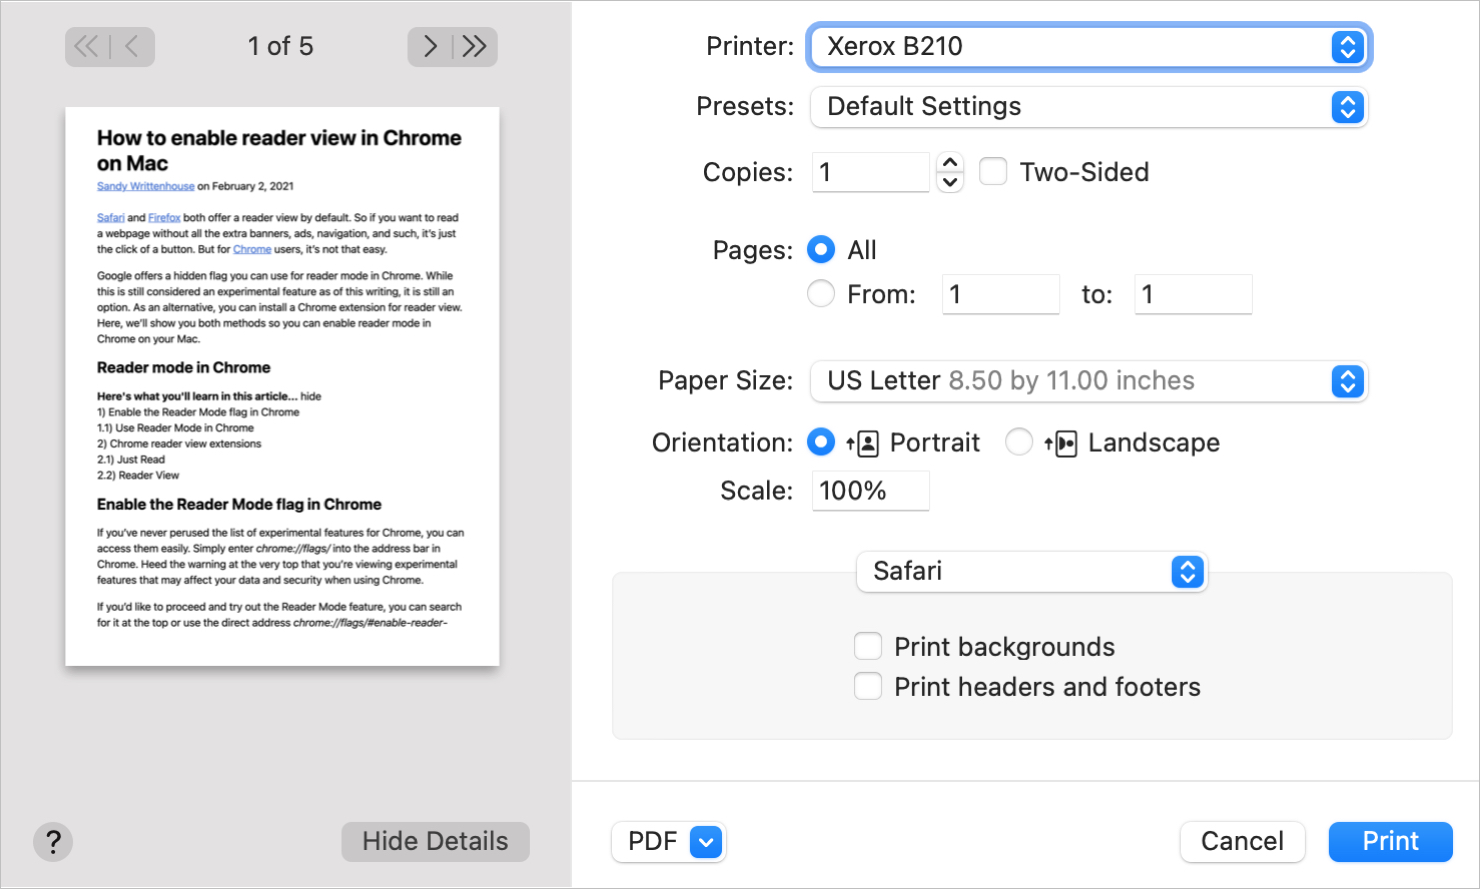 Safari Print Web Pages without Ads on Mac